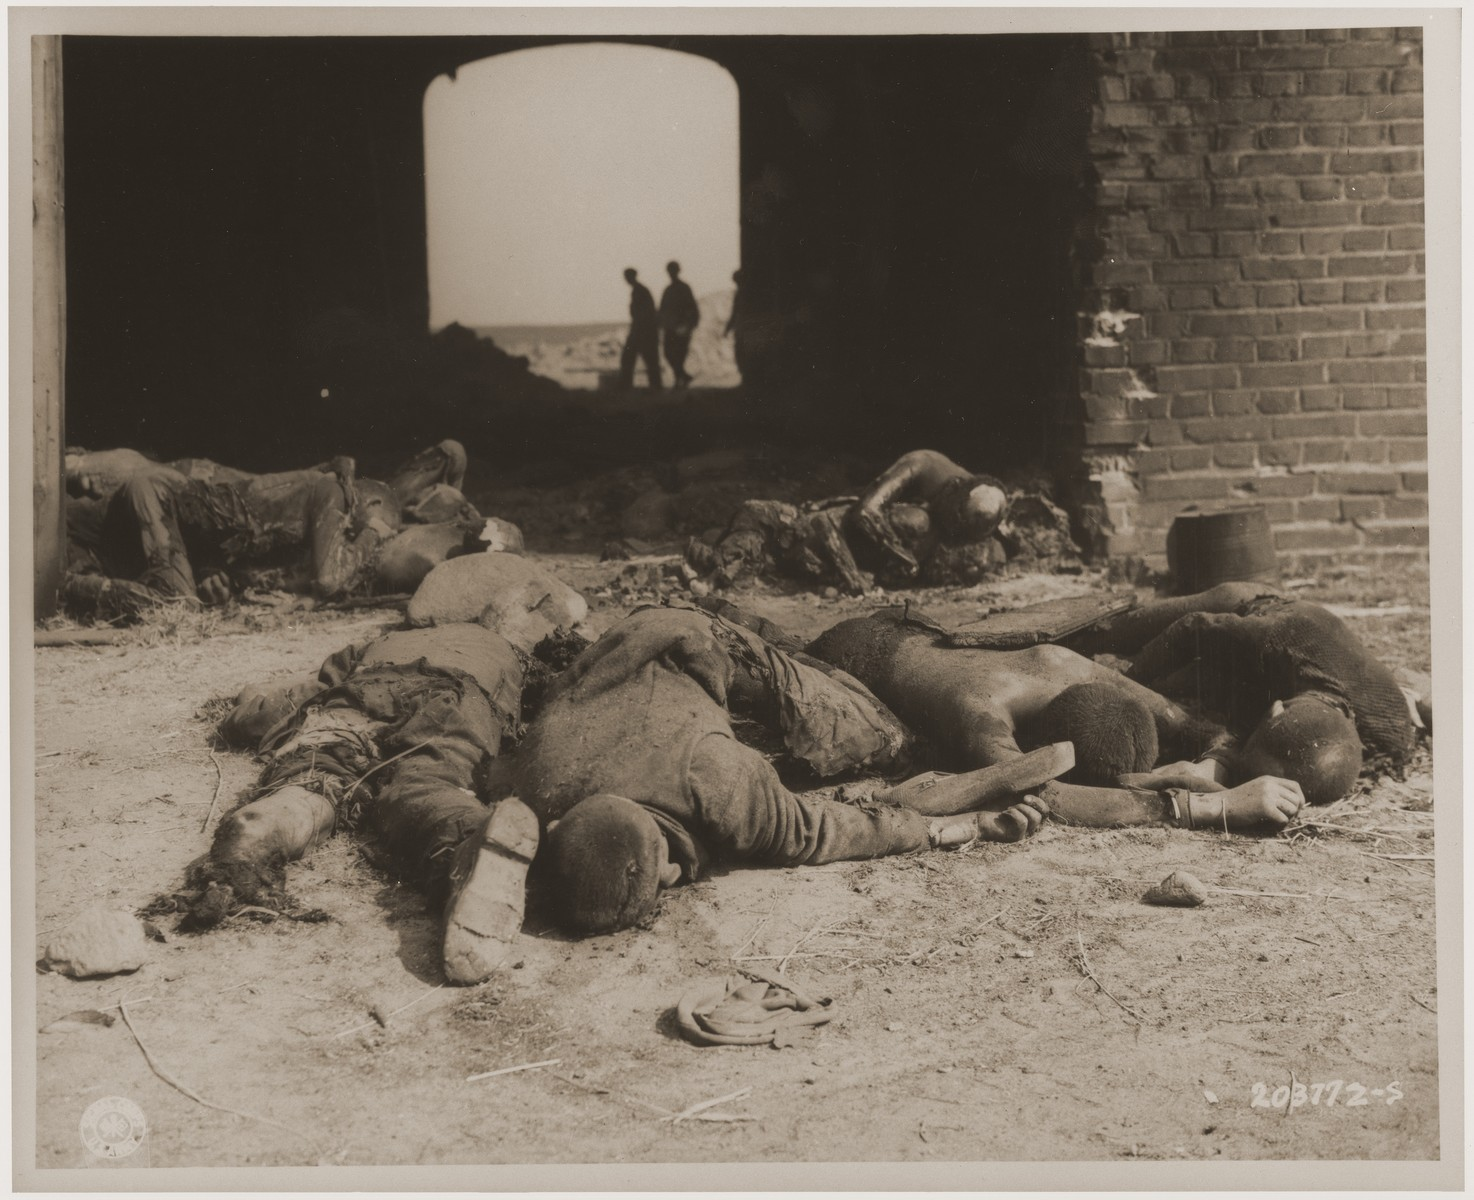 The charred bodies of prisoners burned alive by the SS lie outside of a barn on the outskirts of Gardelegen.